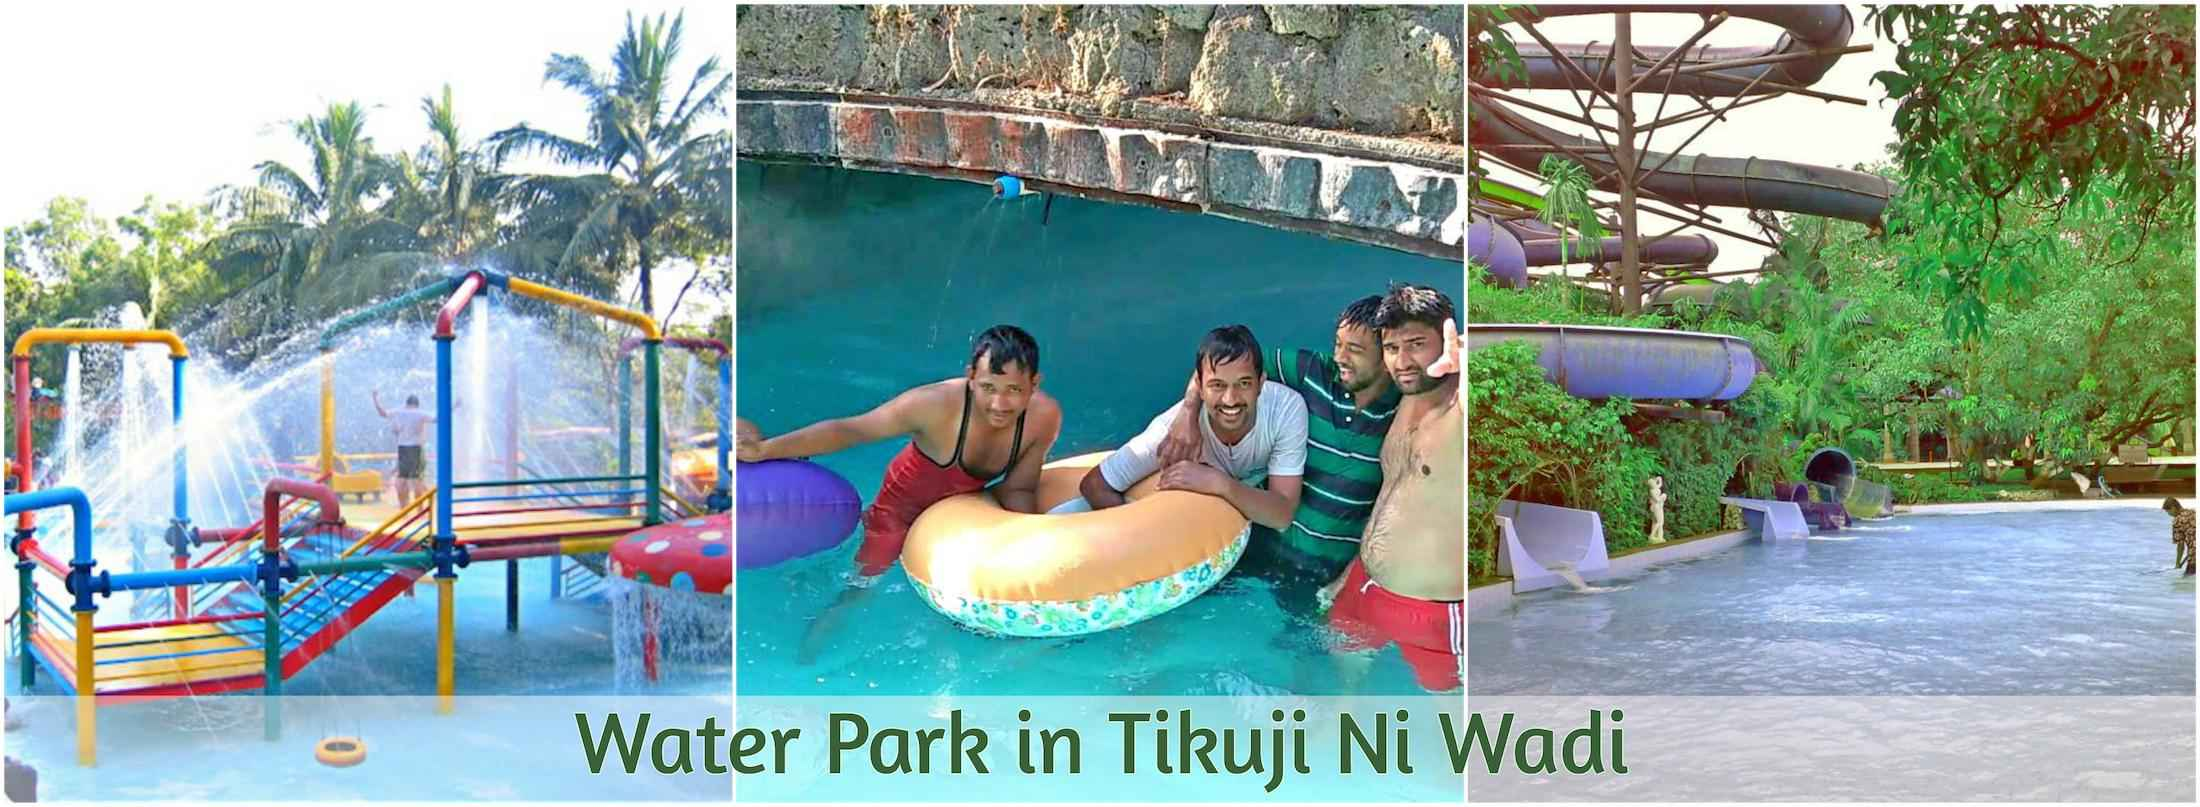 Water-Park-at-tiku-ji-ni-wadi.